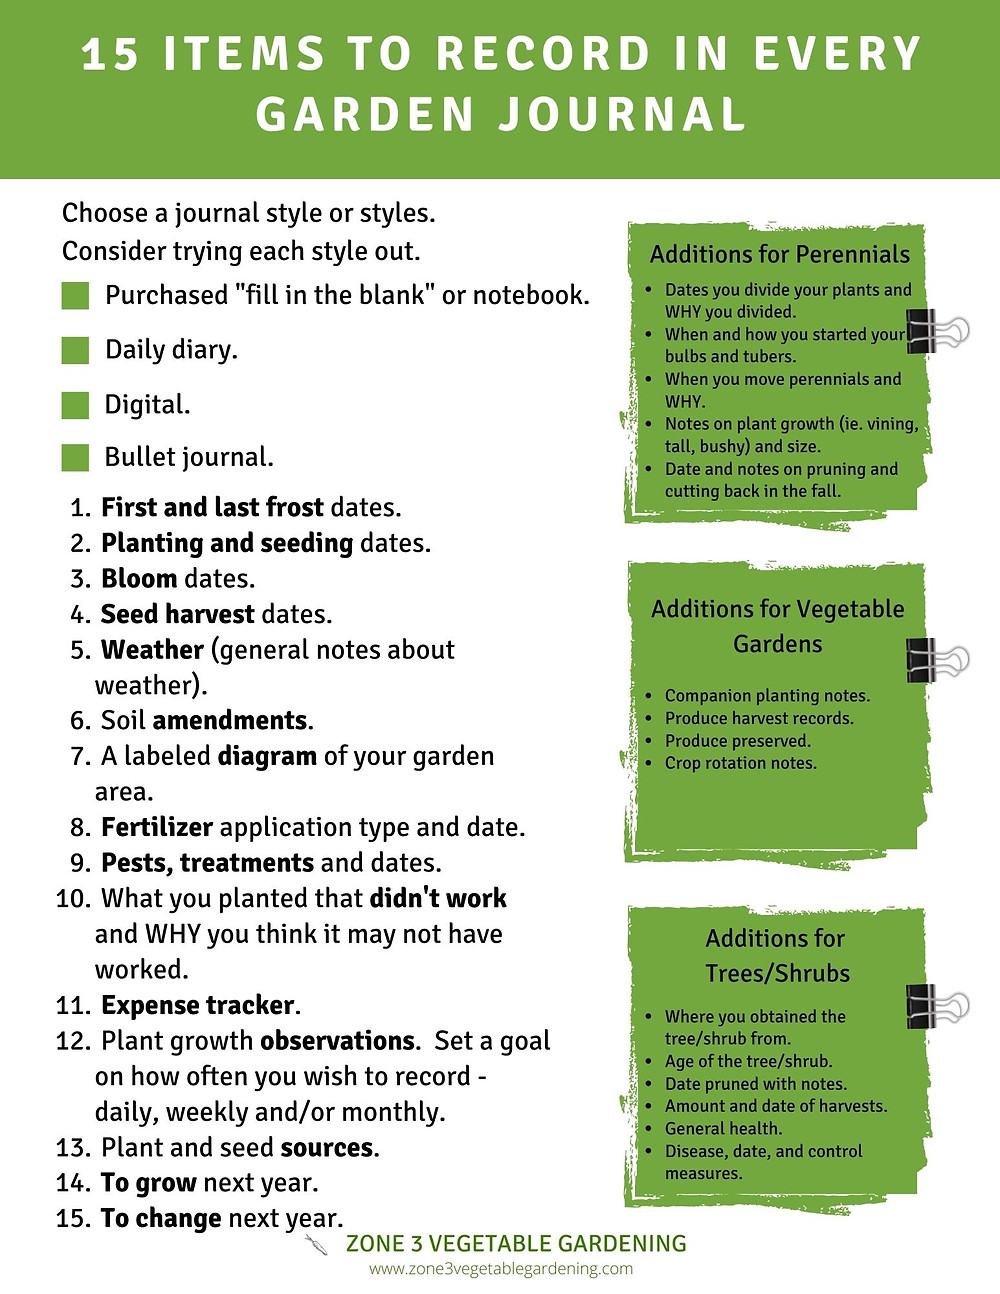 Gardening journaling ideas with a gardening journal template.  Free Printable garden journal pages and tips along with garden bullet journaling.